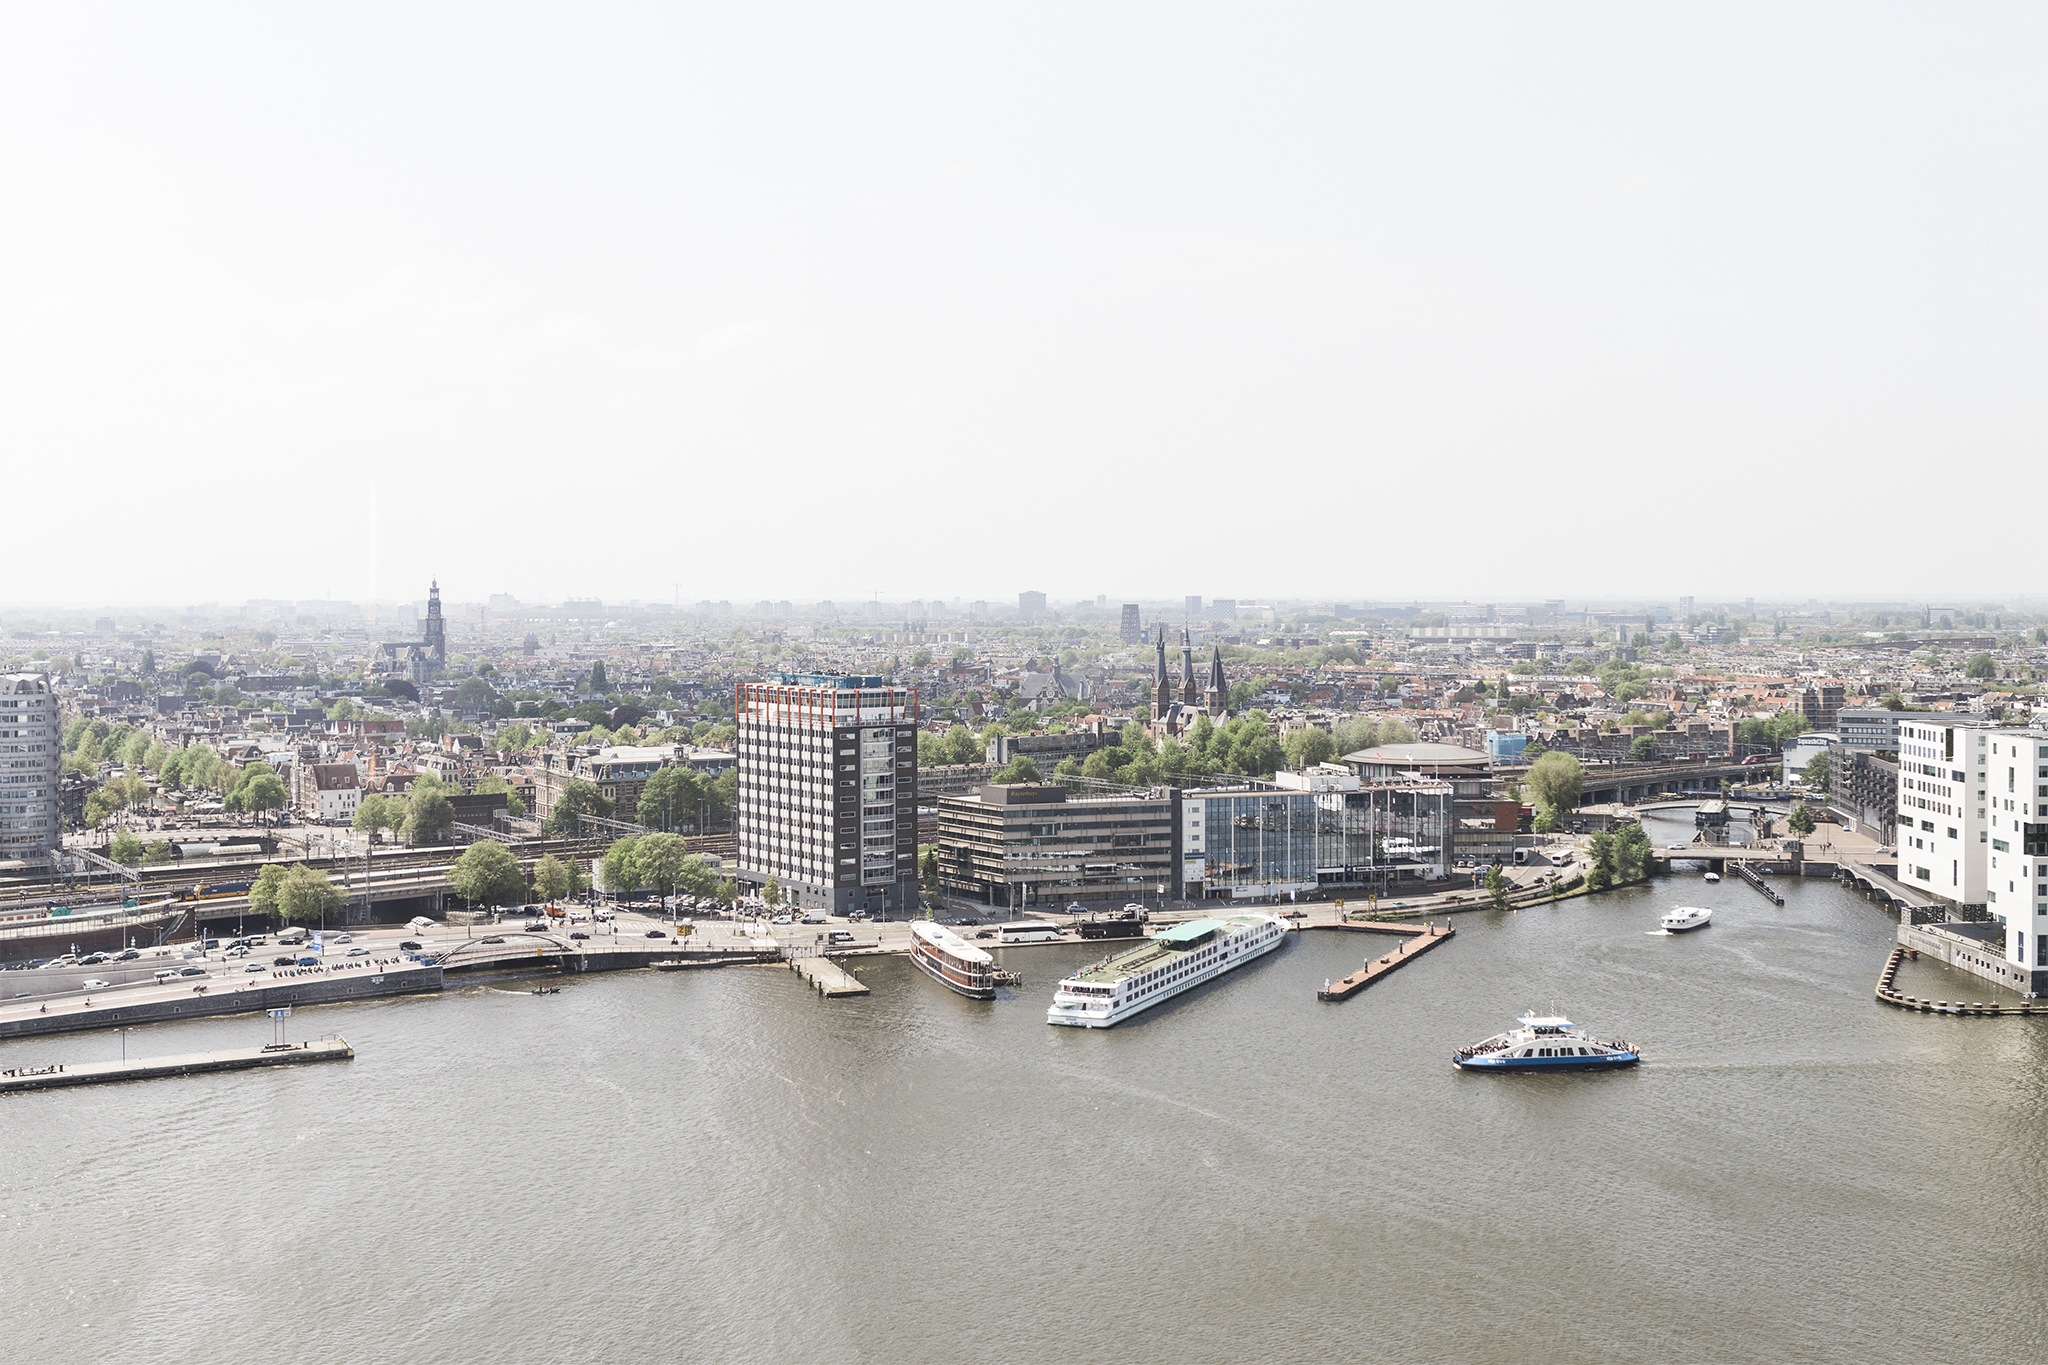 amsterdam-lookout-360-view-5.jpg